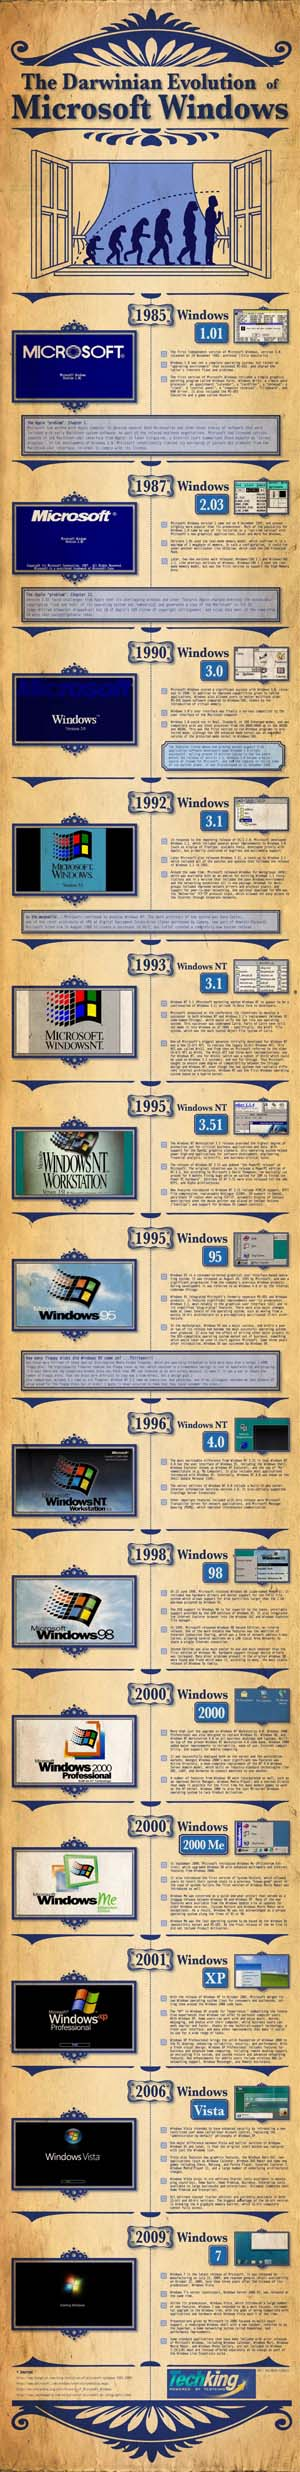 Windows Art Timeline